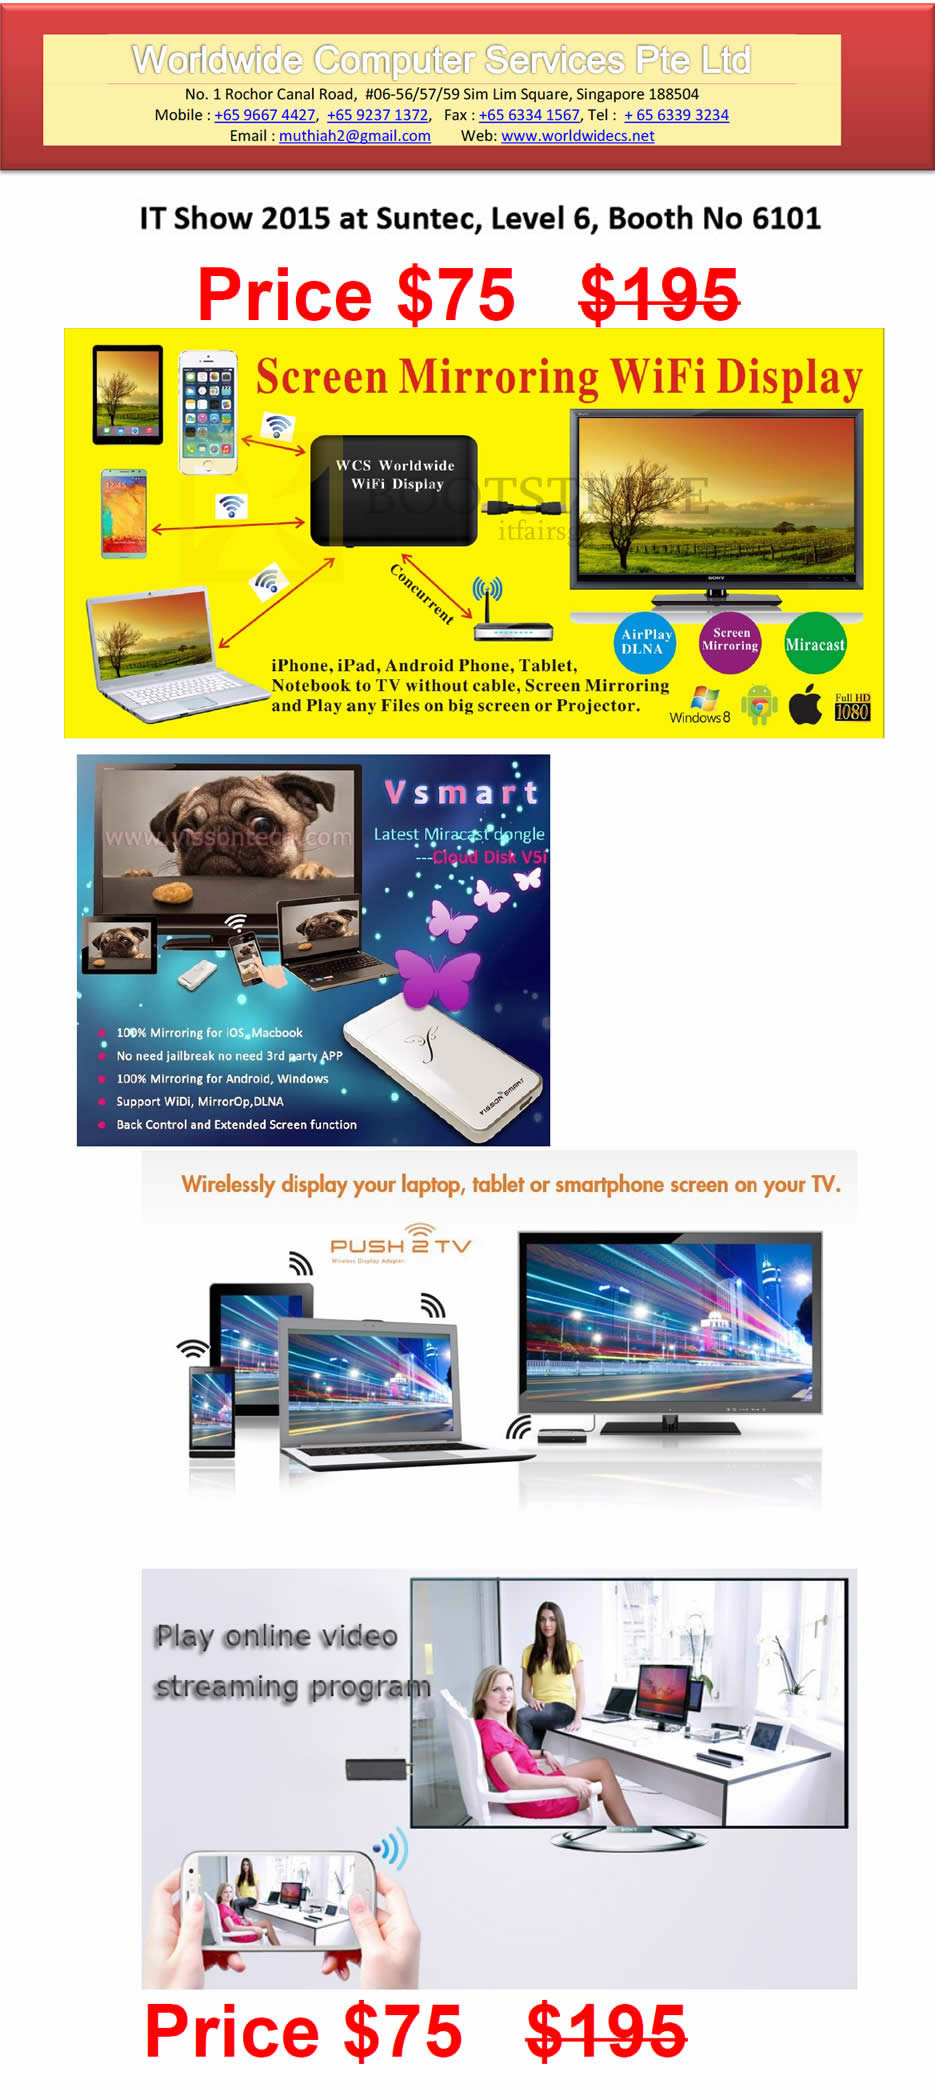 IT SHOW 2015 price list image brochure of Worldwide Computer Services Screen Mirroring Wifi Display